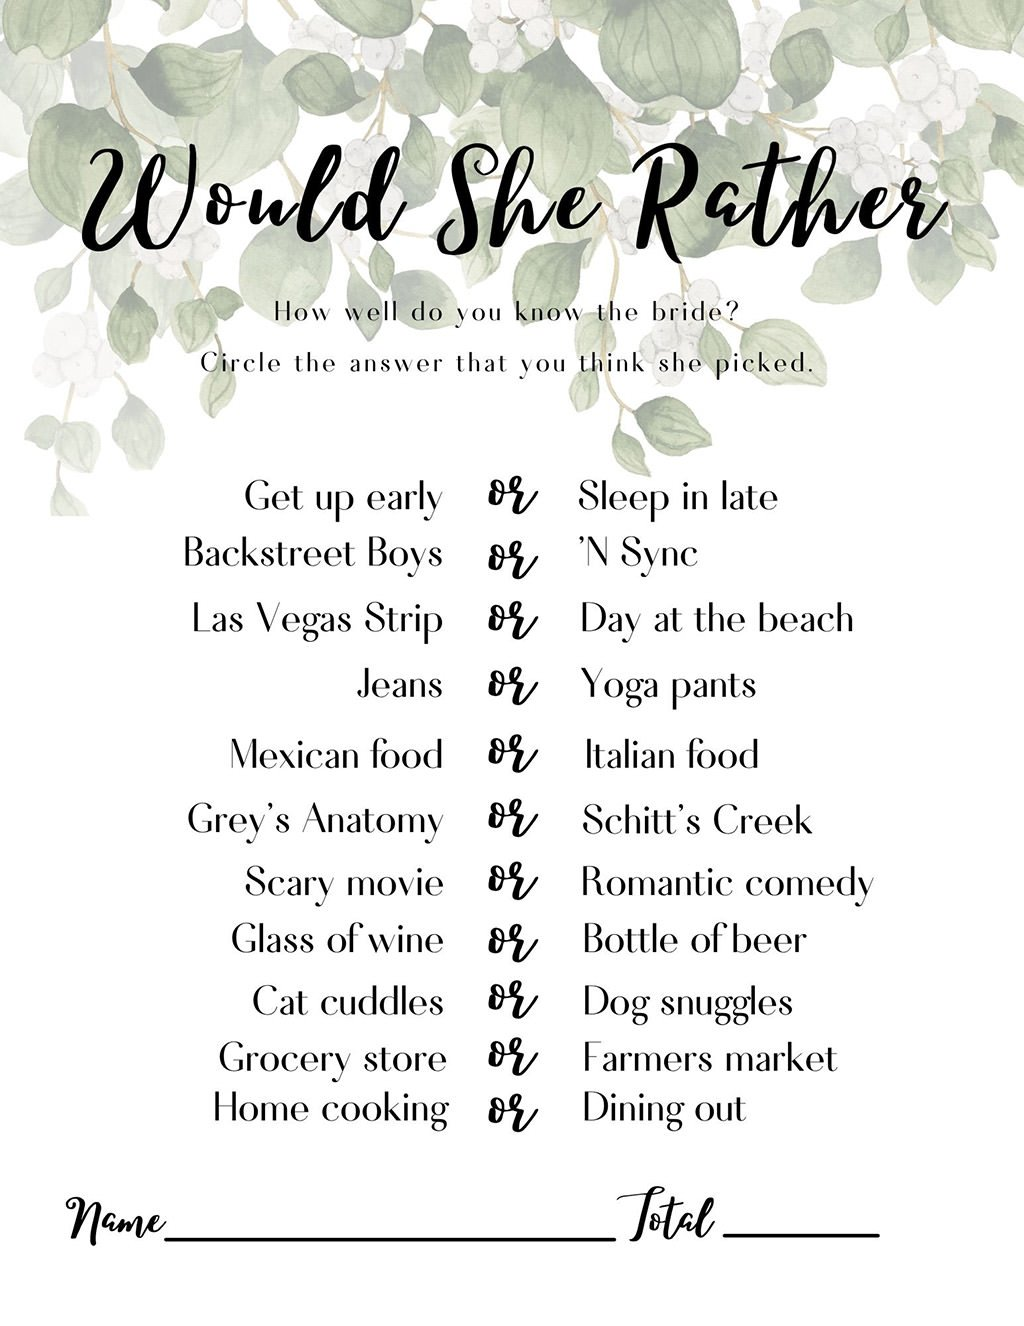 A free printable for the bridal shower game Would she Rather. This printable has greenery at the top